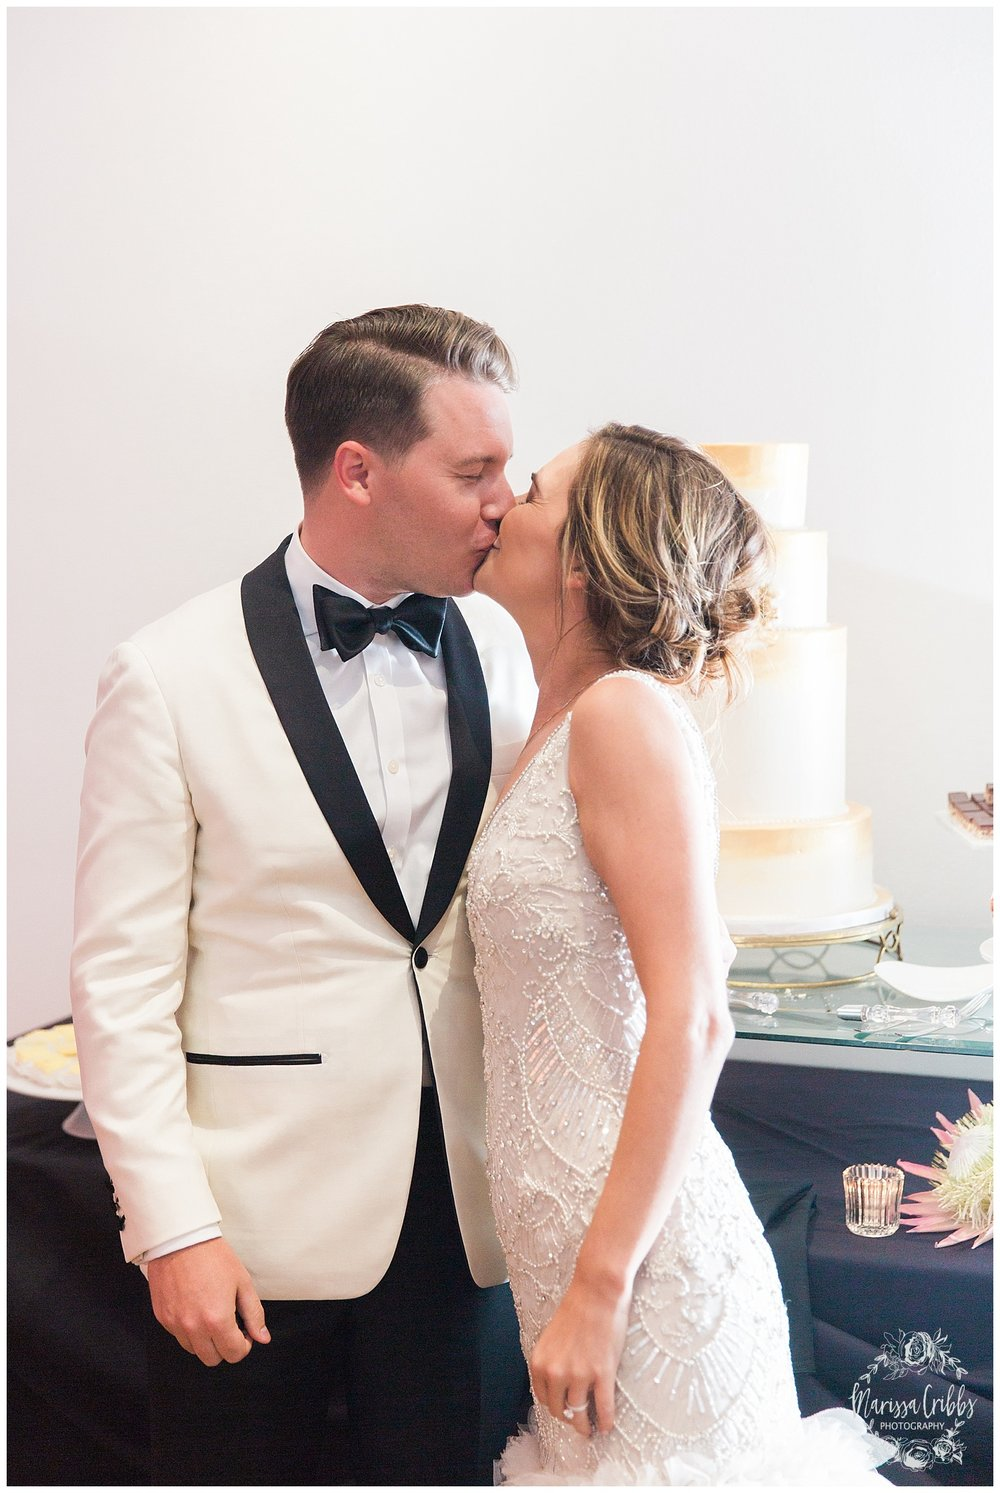 Haley & Steven Reception | The Gallery Event Space | Marissa Cribbs Photography | KC Wedding Photographers_1614.jpg